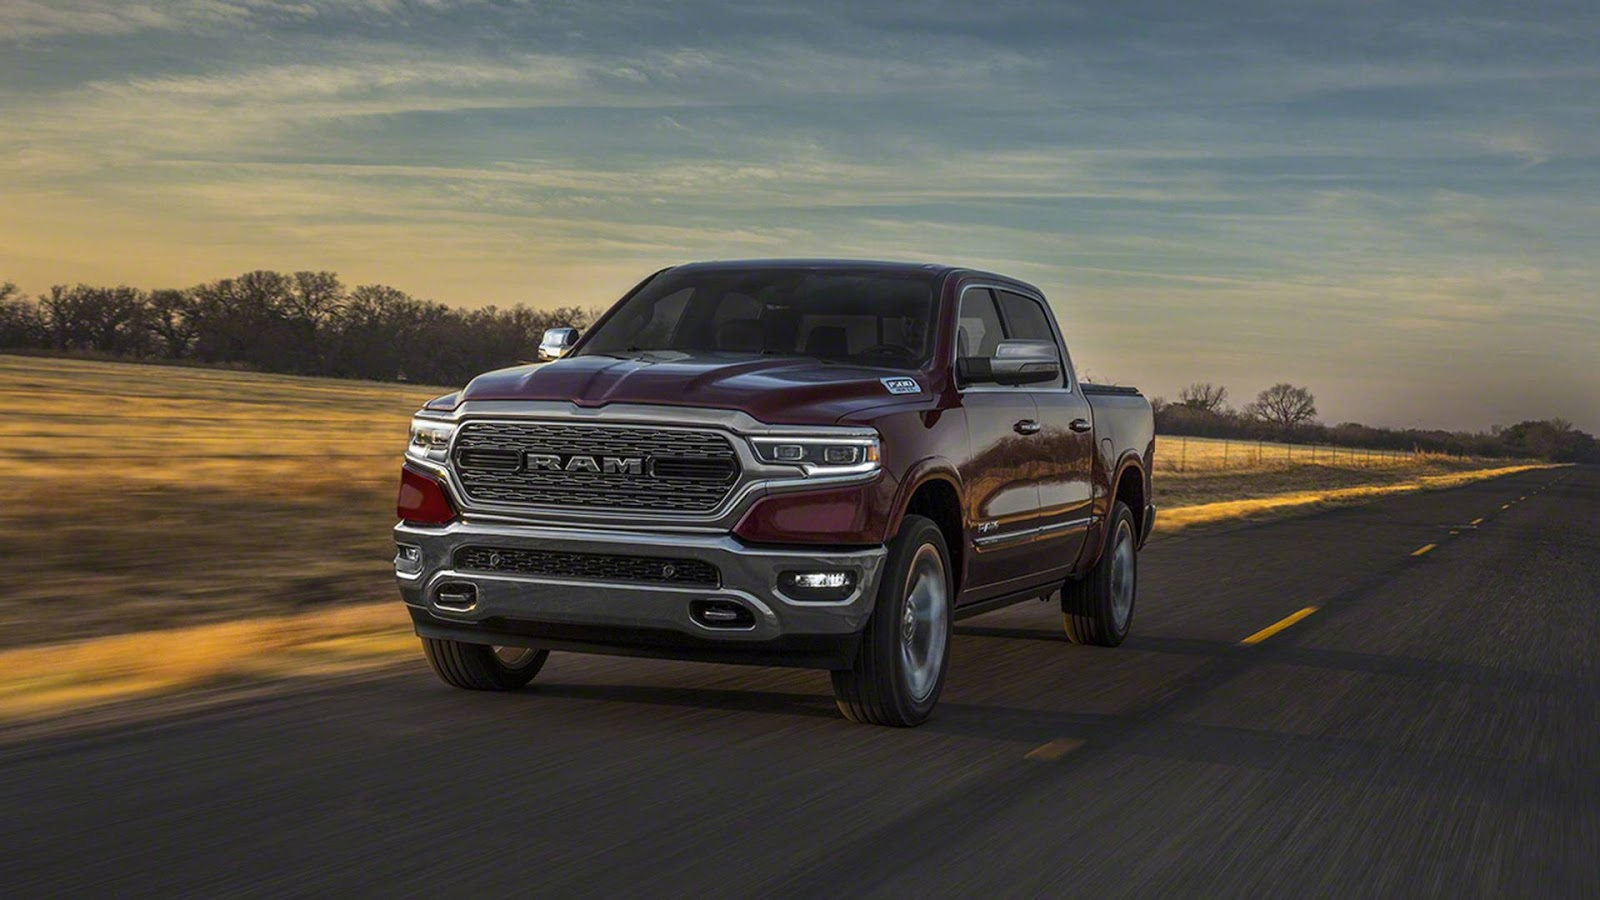 2019 ram 1500 pickup goes official with 48 volt mild hybrid system autoevolution. Black Bedroom Furniture Sets. Home Design Ideas